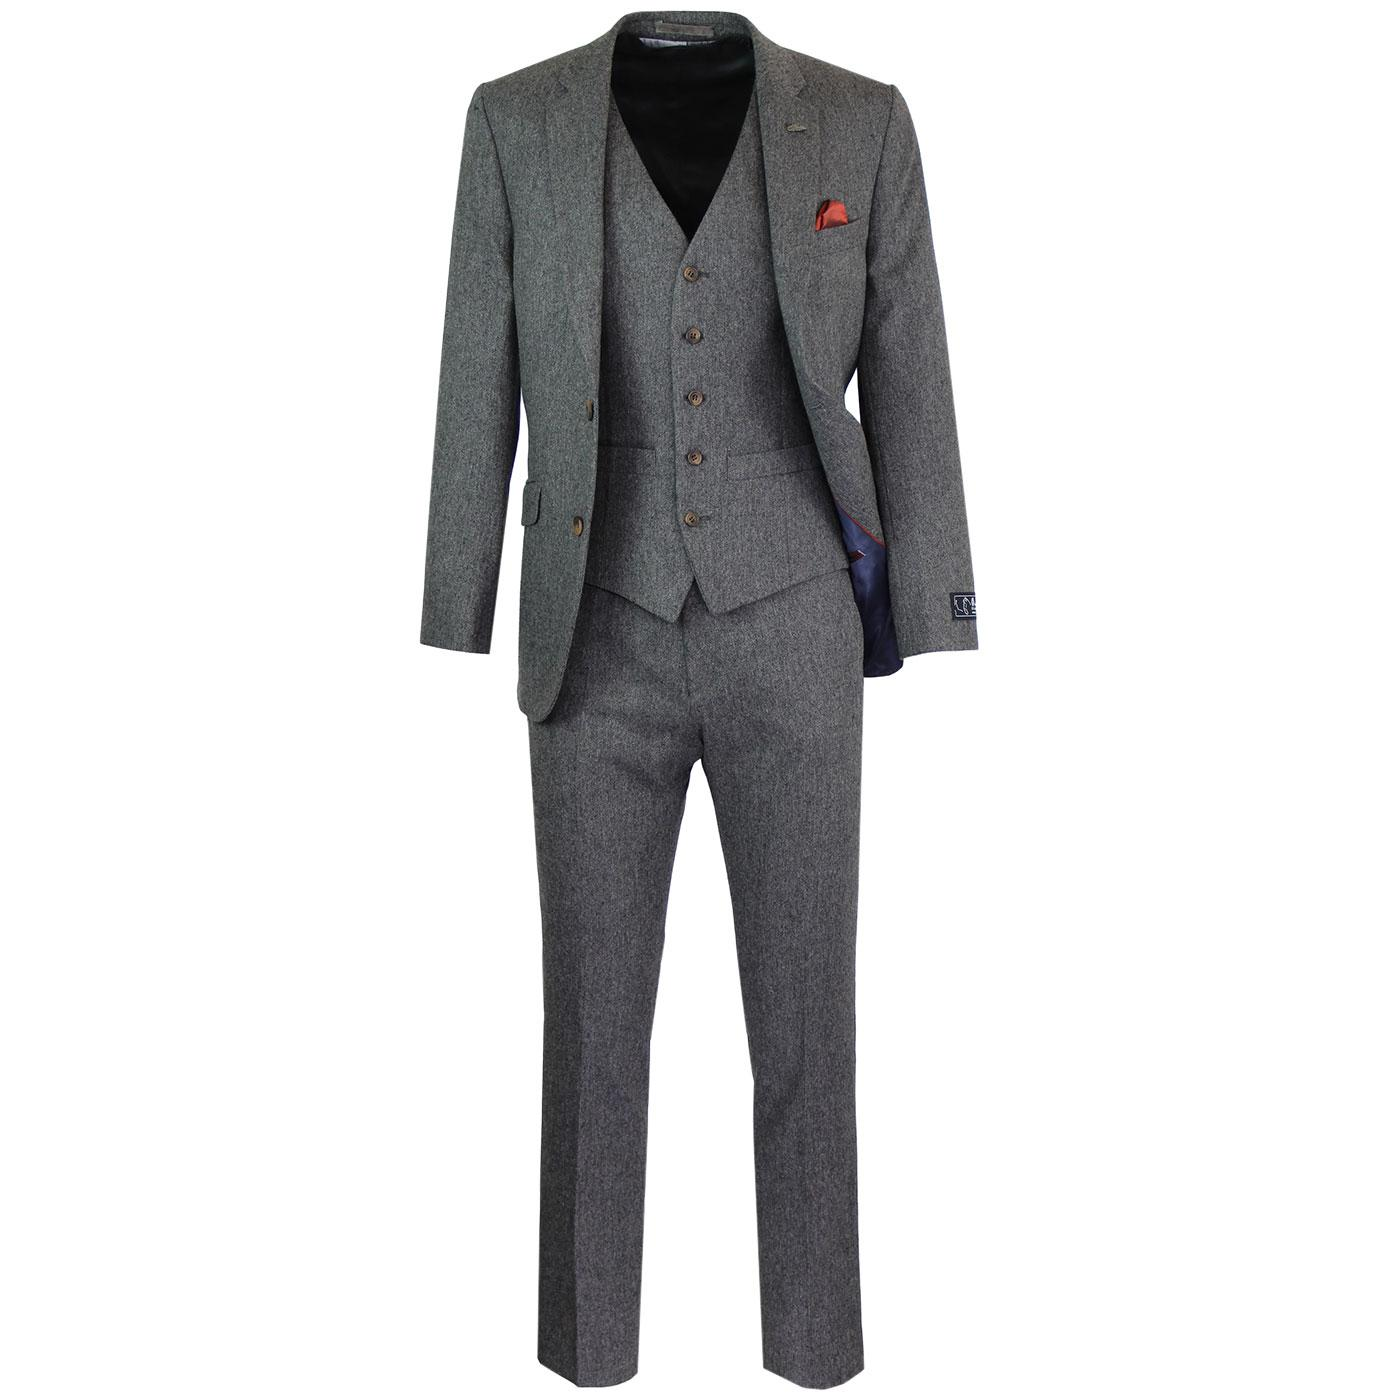 Men's Retro Mod Donegal 2 or 3 Piece Suit Charcoal